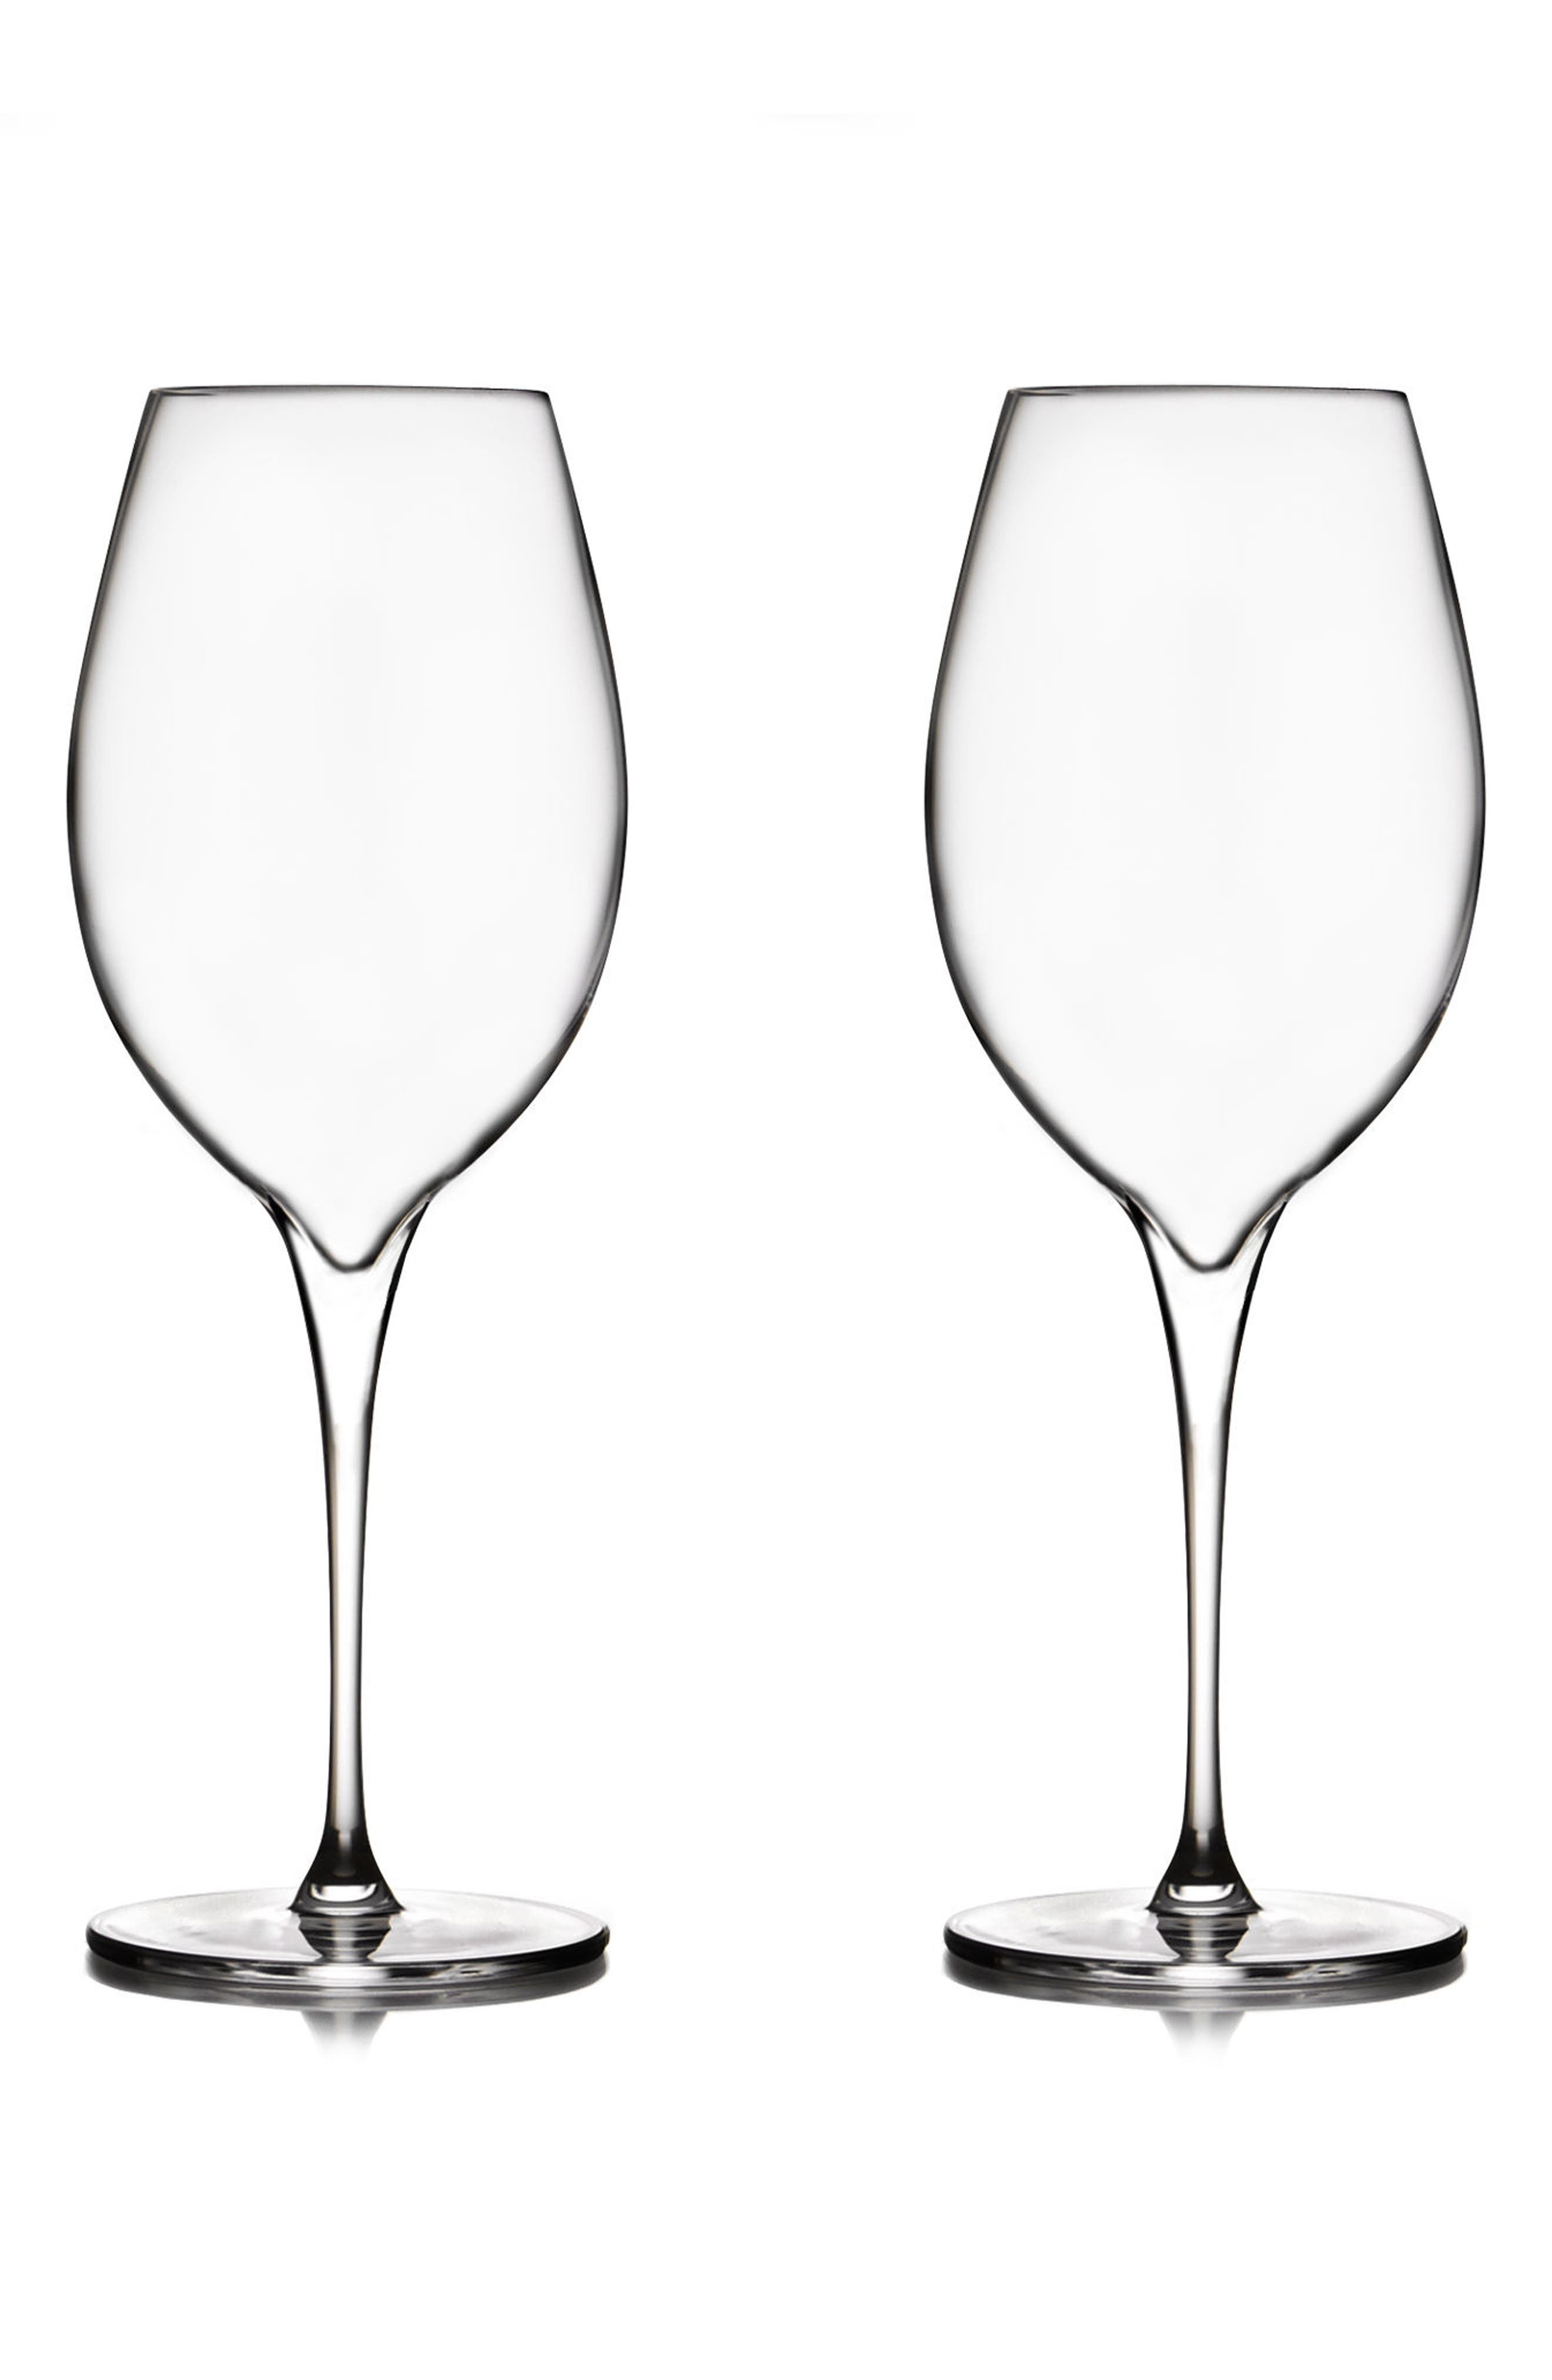 Vie Set of 2 Pinot Grigio Glasses,                         Main,                         color, Clear